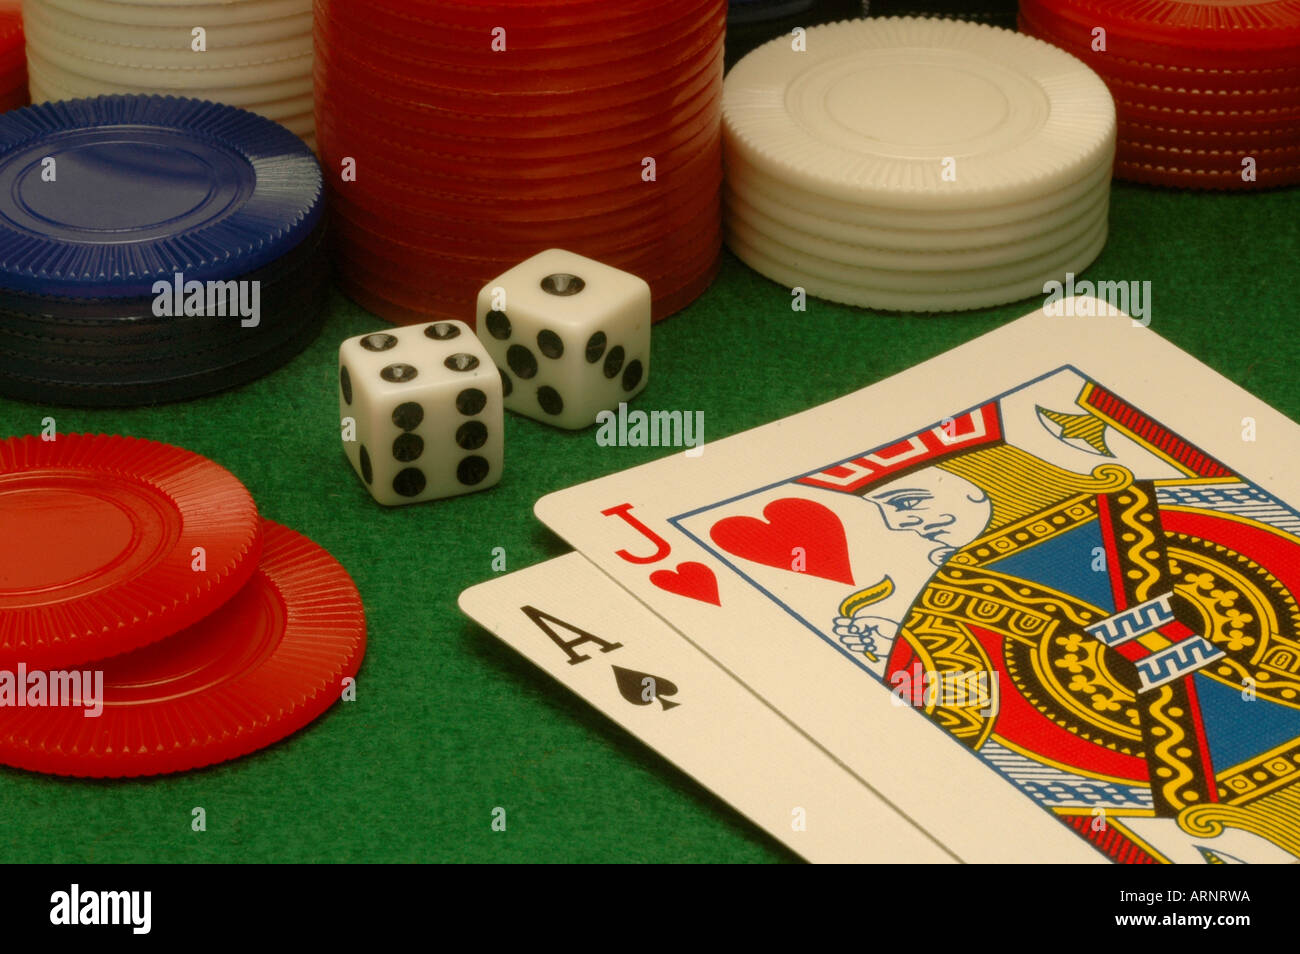 Cards dice and chips on a green felt gambling table. - Stock Image